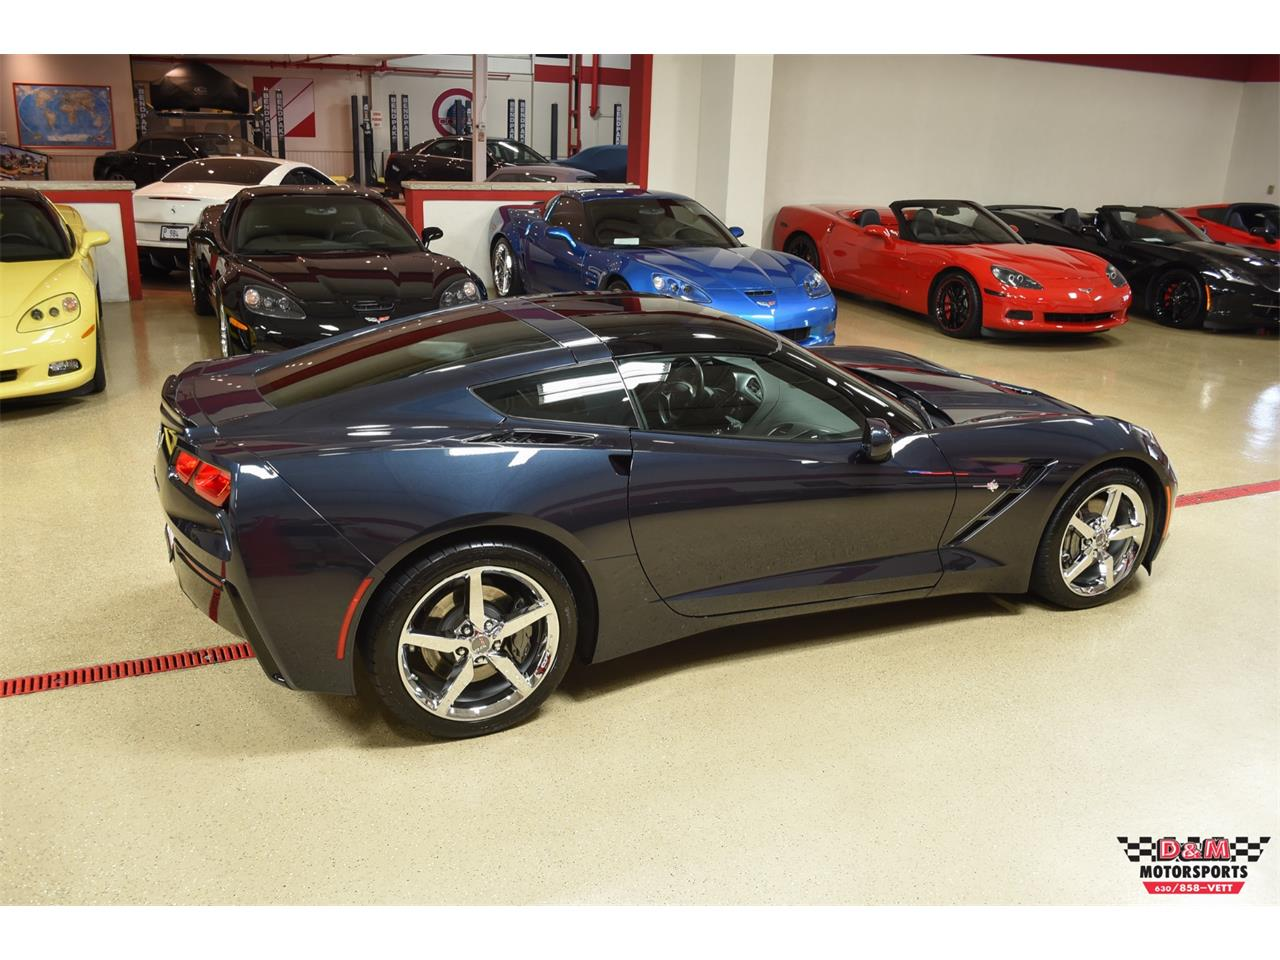 Large Picture of '15 Corvette - $45,995.00 Offered by D & M Motorsports - QGAK